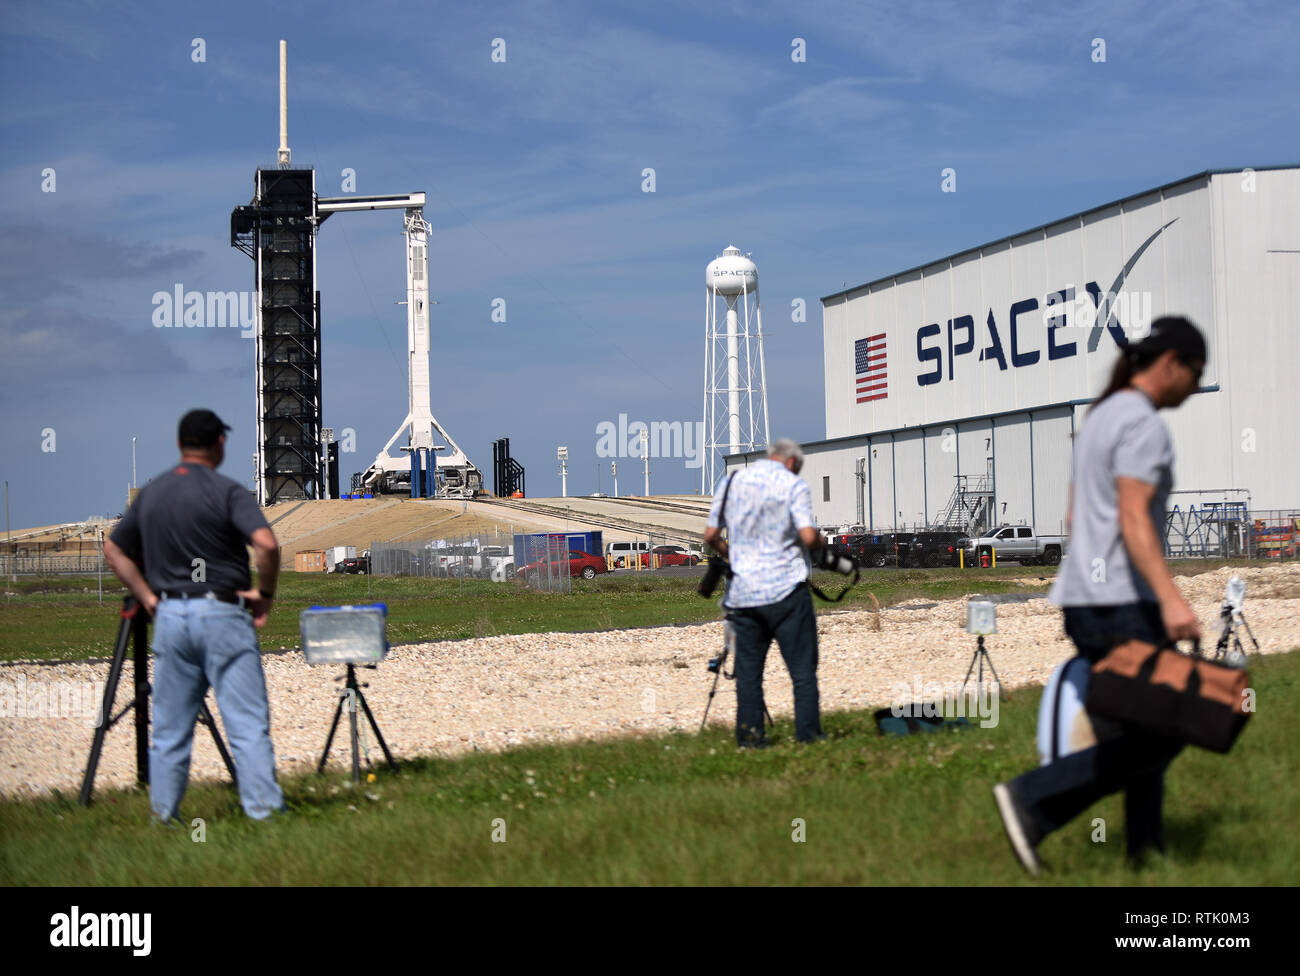 Kennedy Space Center, Florida, USA. 01st Mar, 2019. A SpaceX Falcon 9 rocket carrying the unmanned Crew Dragon capsule sits ready for launch on March 1, 2019 at Pad 39A at the Kennedy Space Center in Florida. The rocket is set to lift off on its first flight, Demo-1, on March 2 at 2:49 a.m.EST. Credit: Paul Hennessy/Alamy Live News - Stock Image